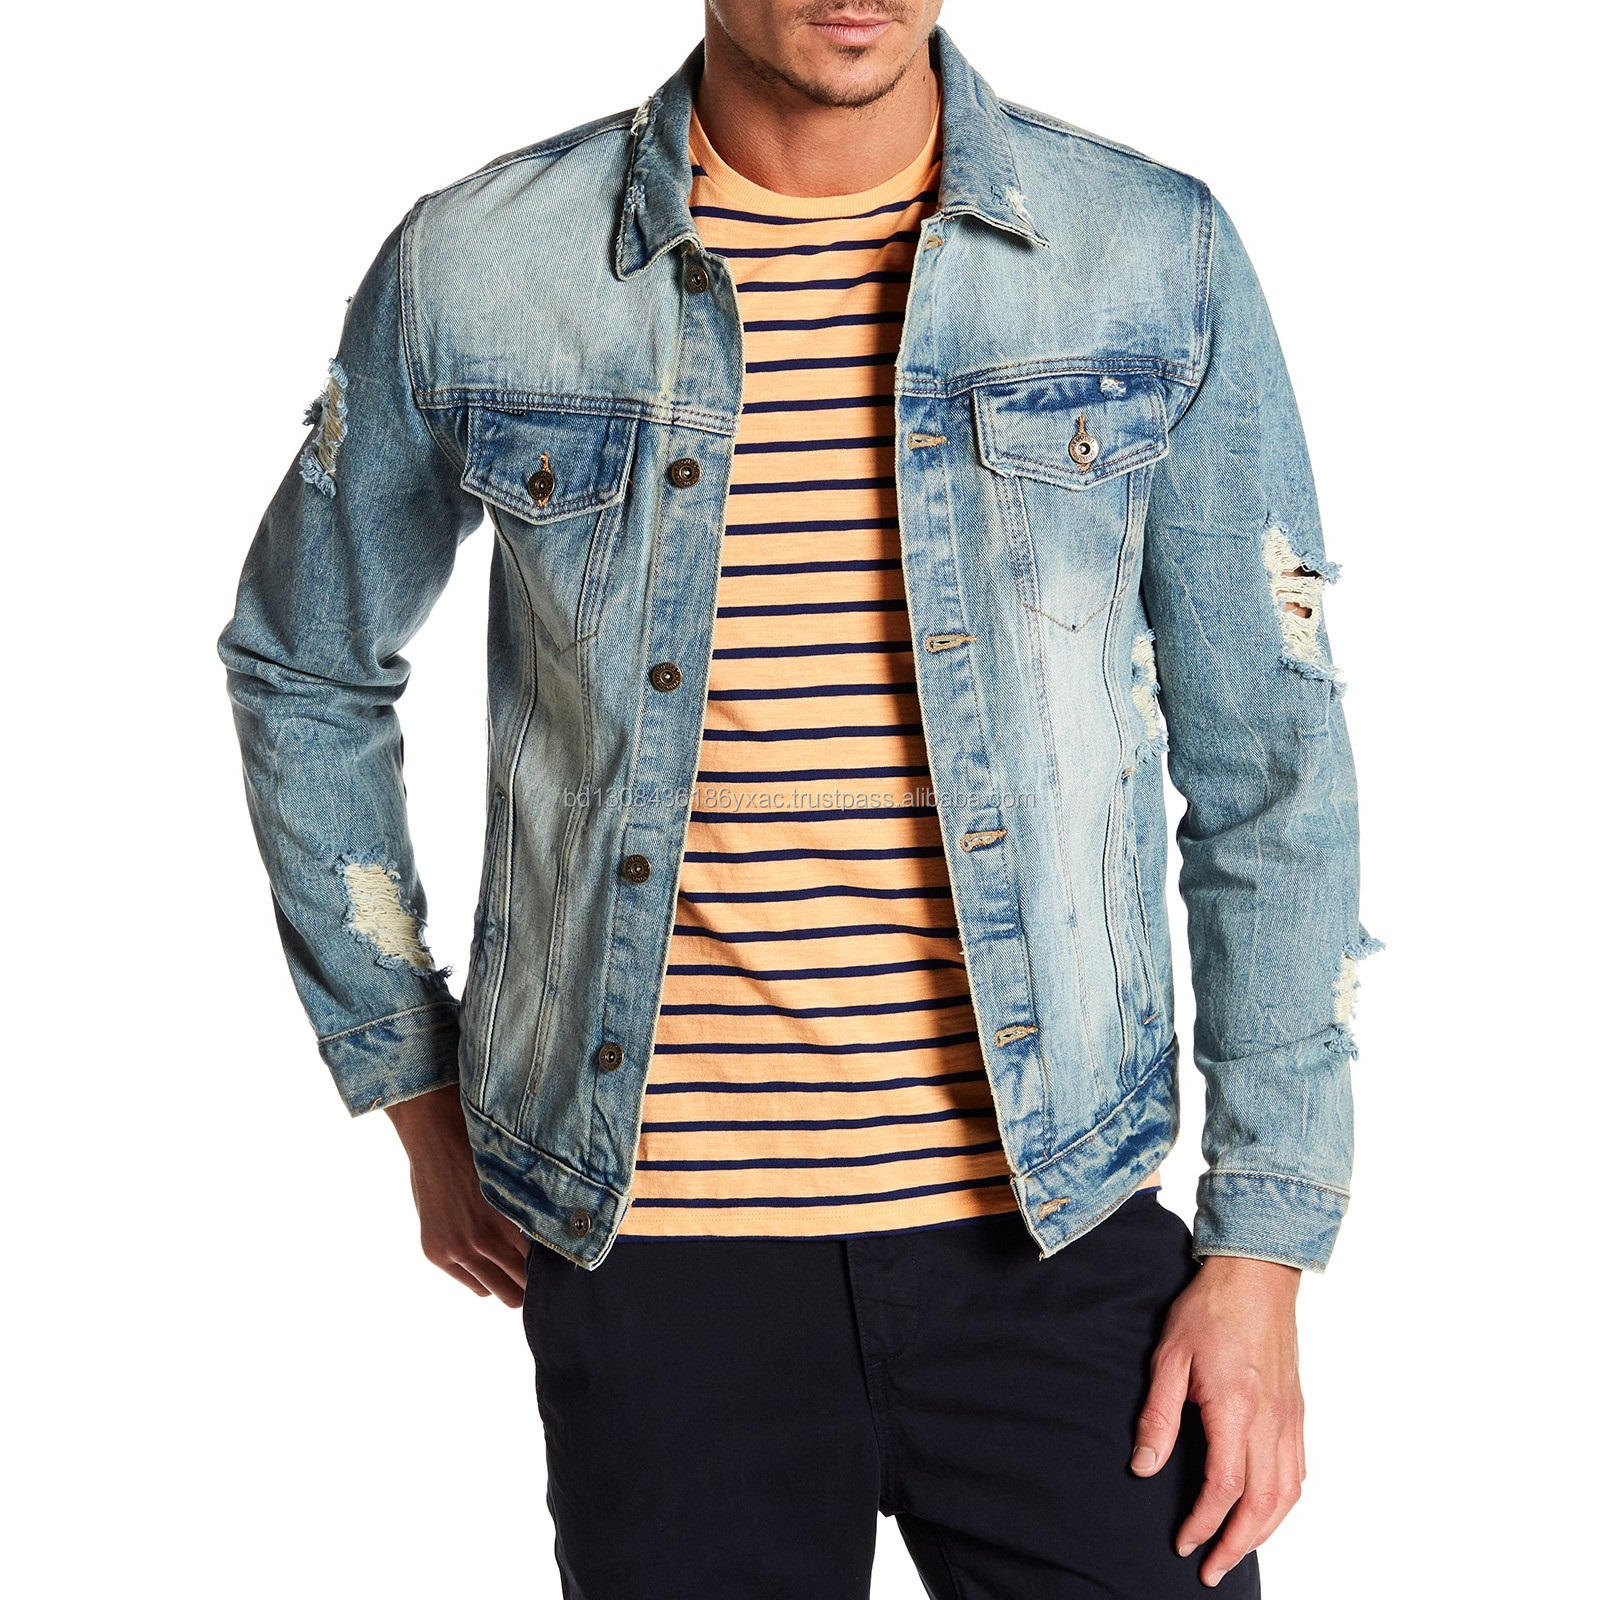 Export Oriented Wholesale Mens Denim Jacket From Bangladesh